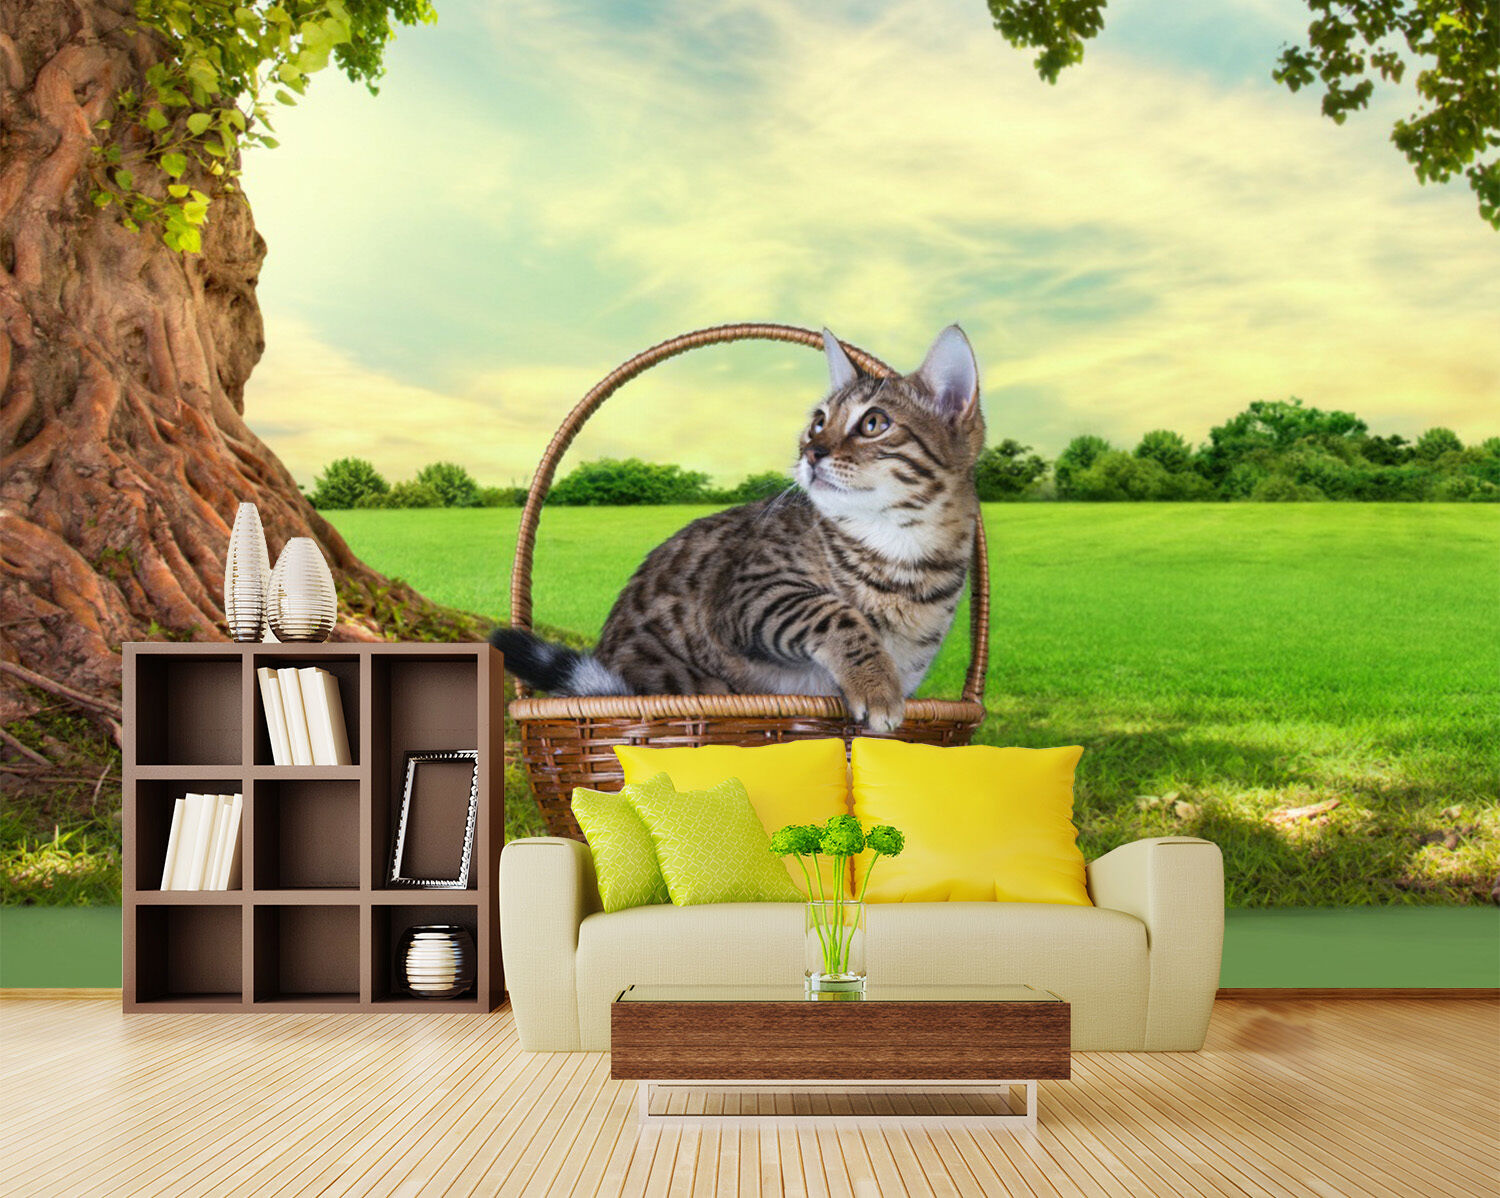 3D Tree Basket Cat 25 WallPaper Murals Wall Print Decal Wall Deco AJ WALLPAPER